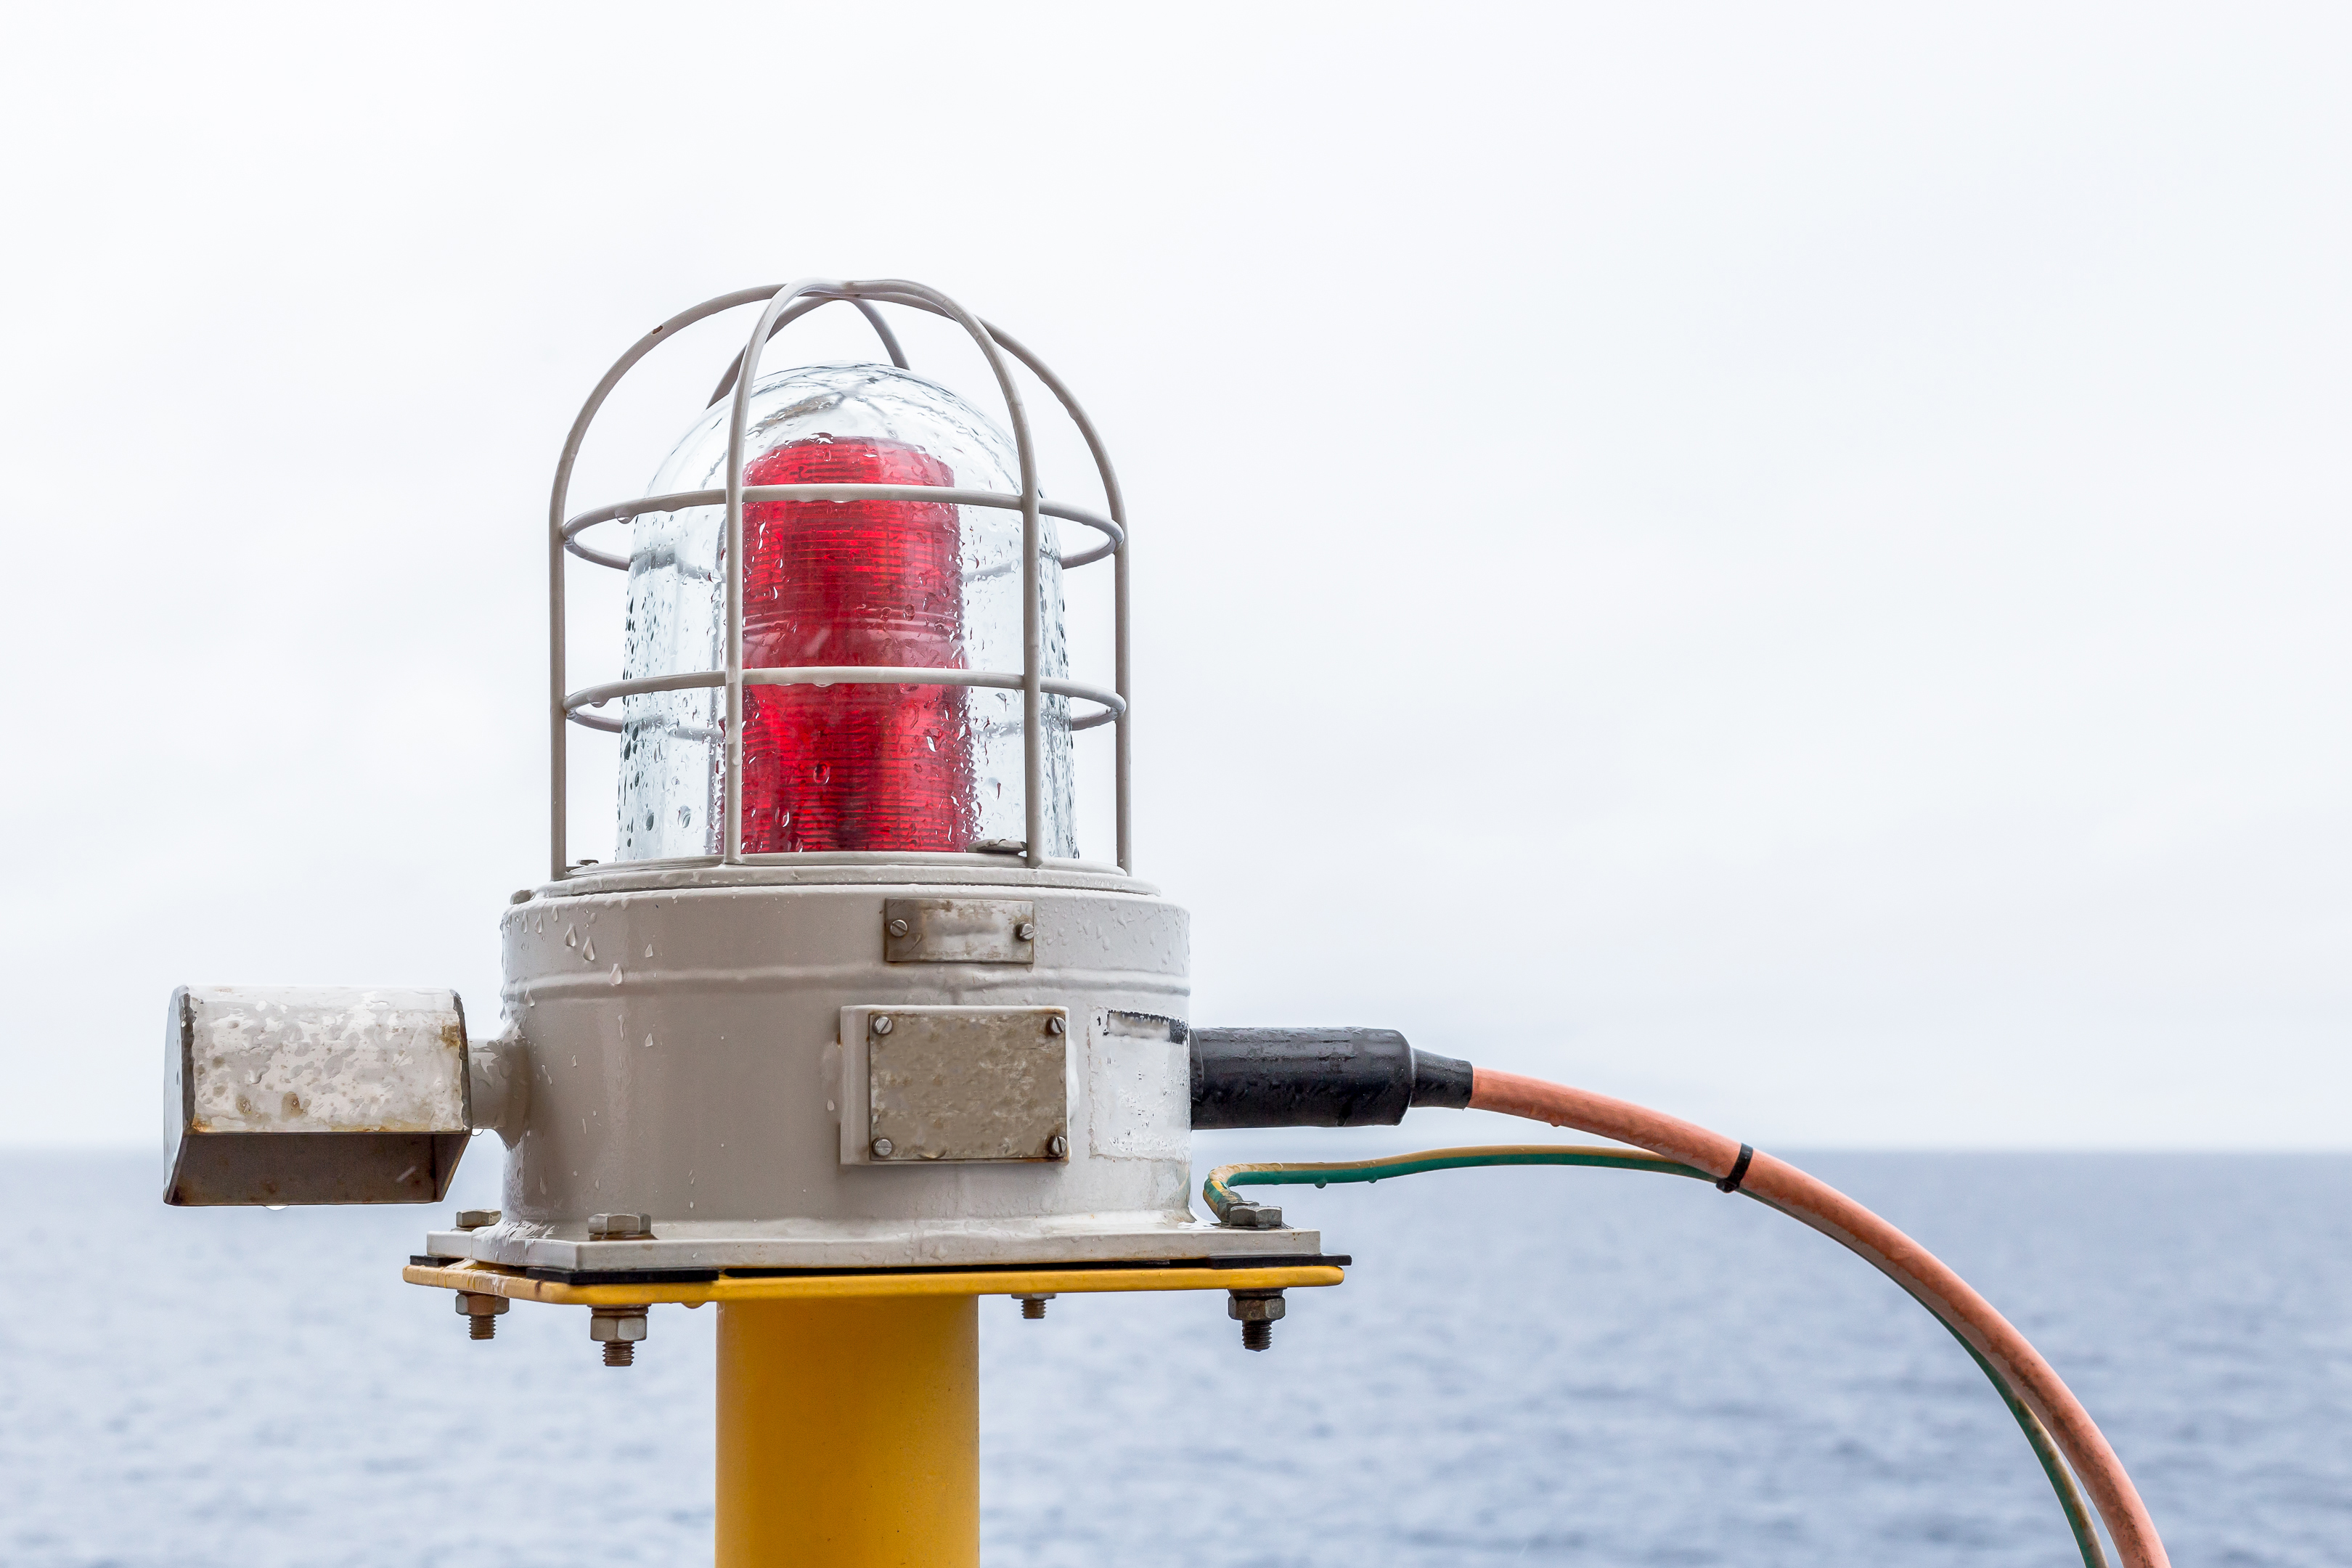 navigation lights bulbs on the oil & gas offshore wellhead platform.